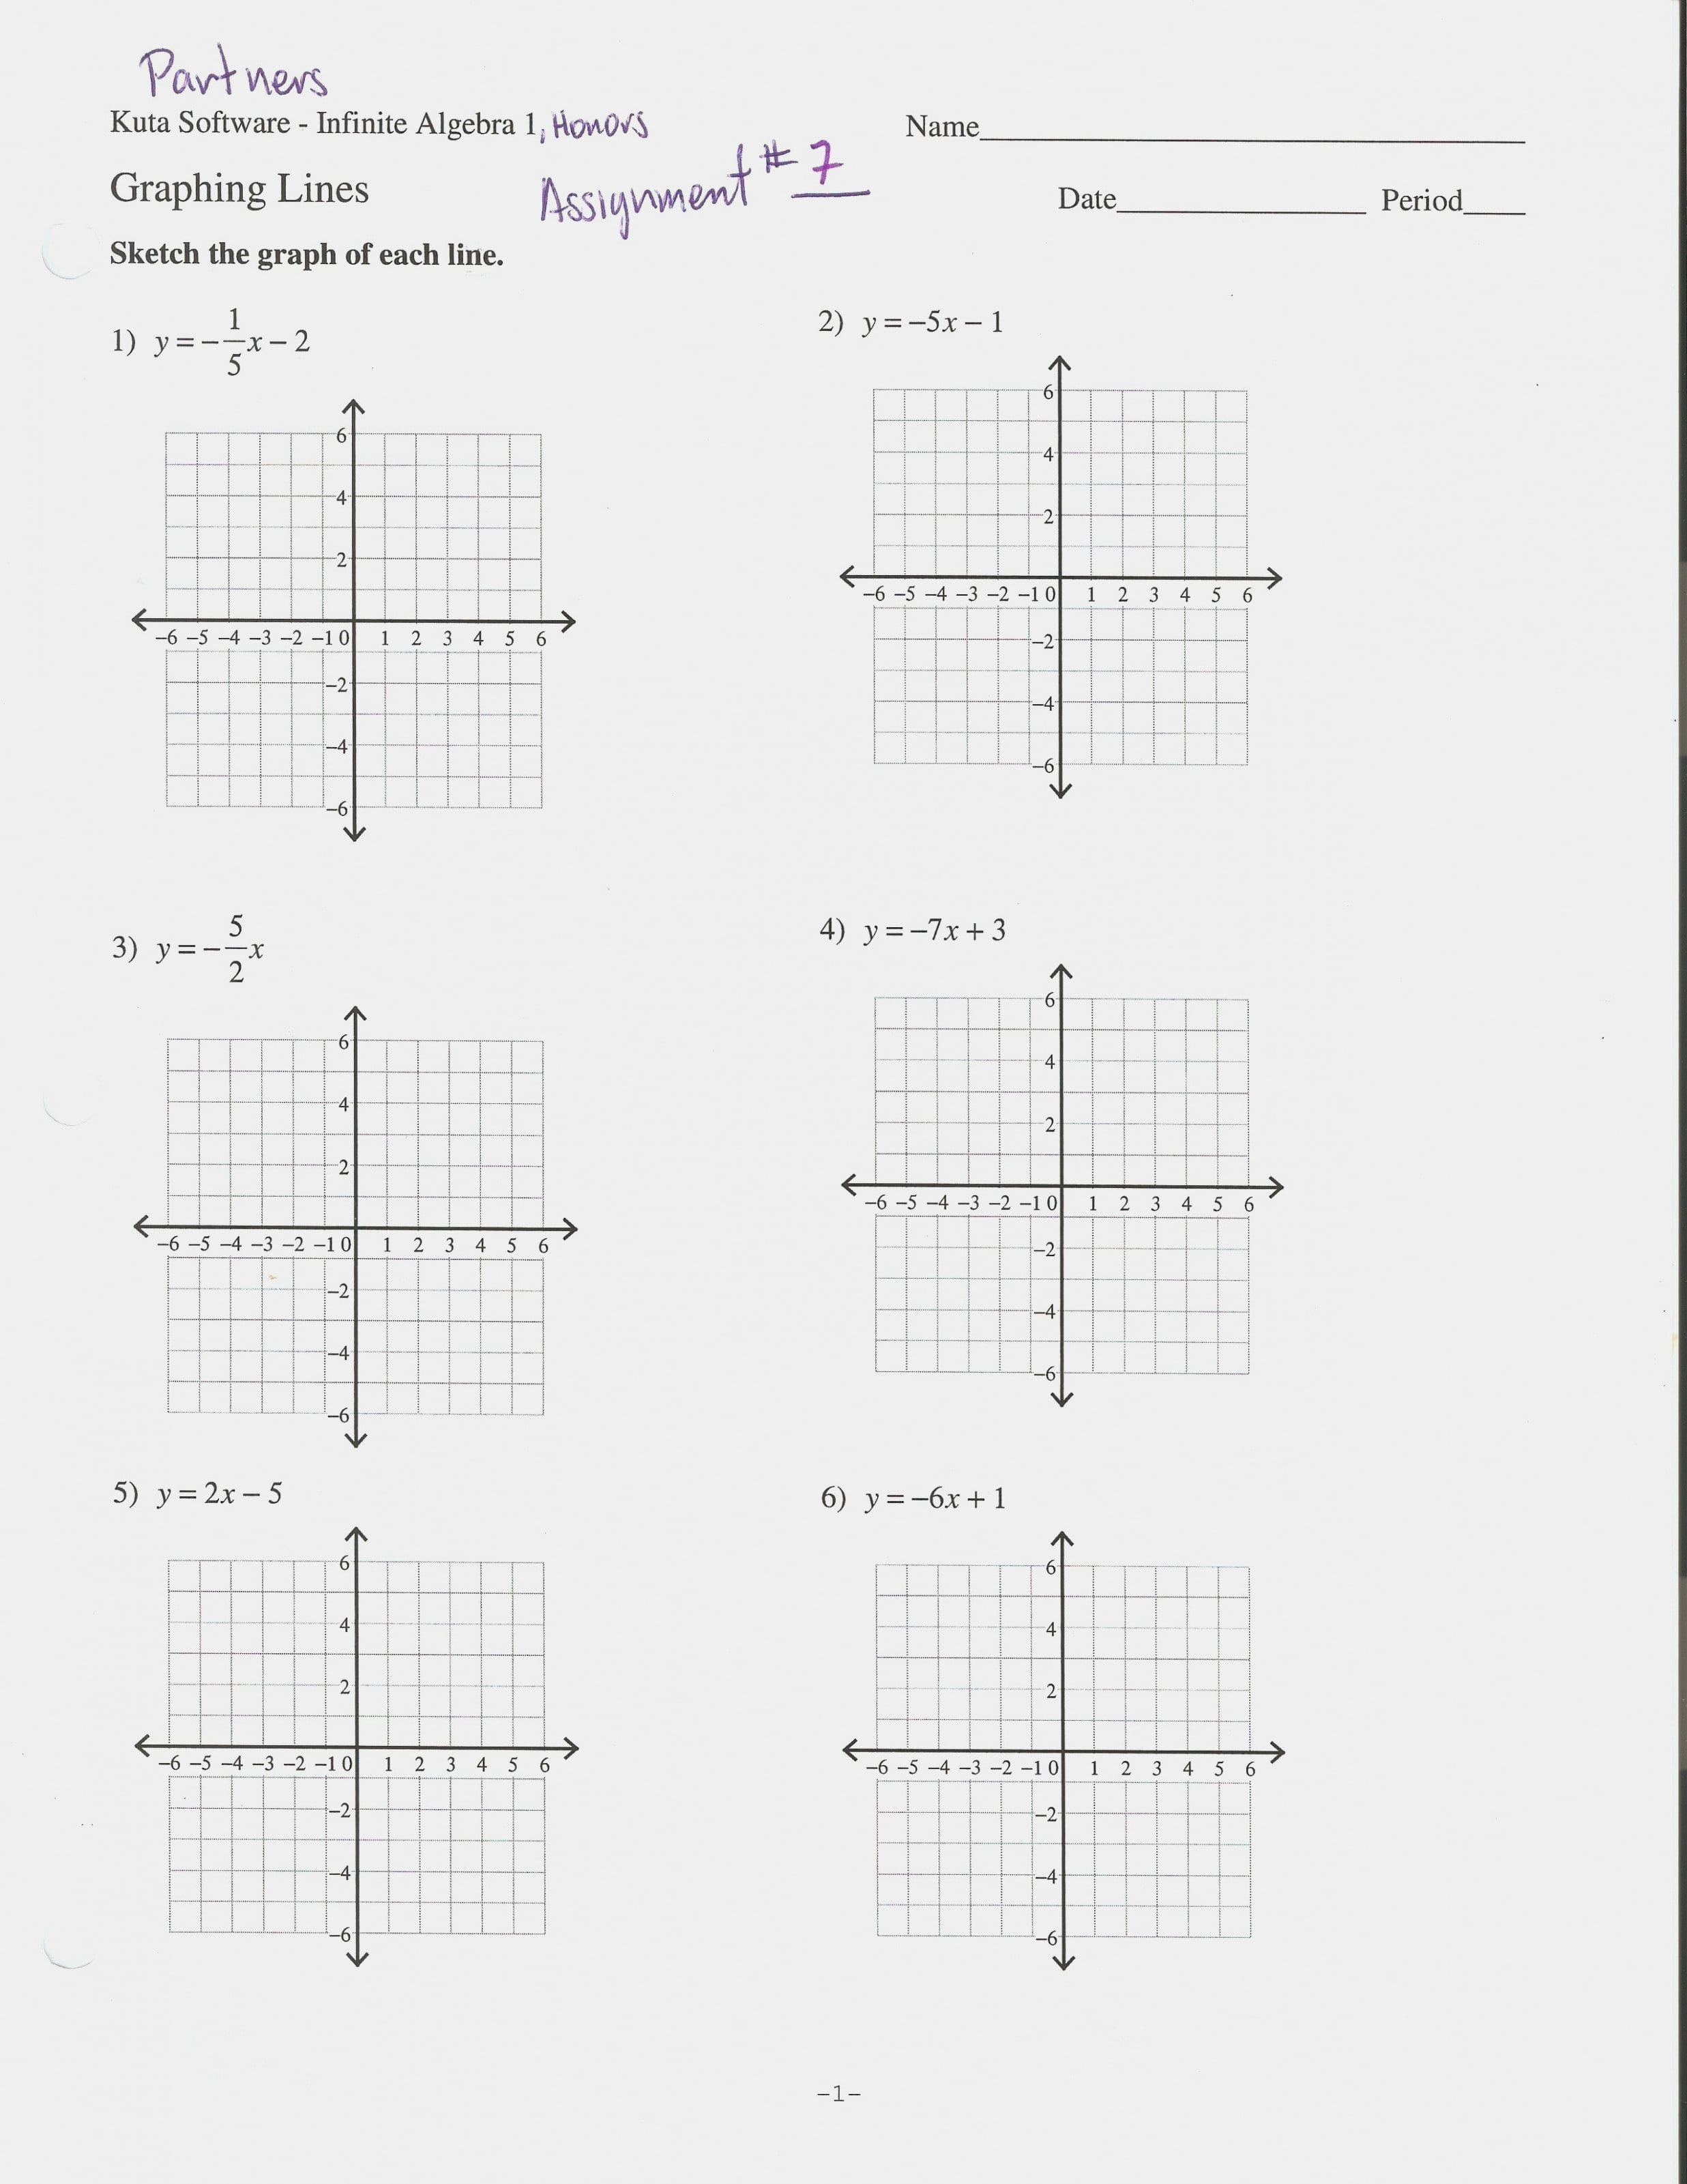 Graphing Equations In Slope Intercept Form Worksheet 133 13 Answers Within Algebra 1 Slope Intercept Form Worksheet 1 Answer Key